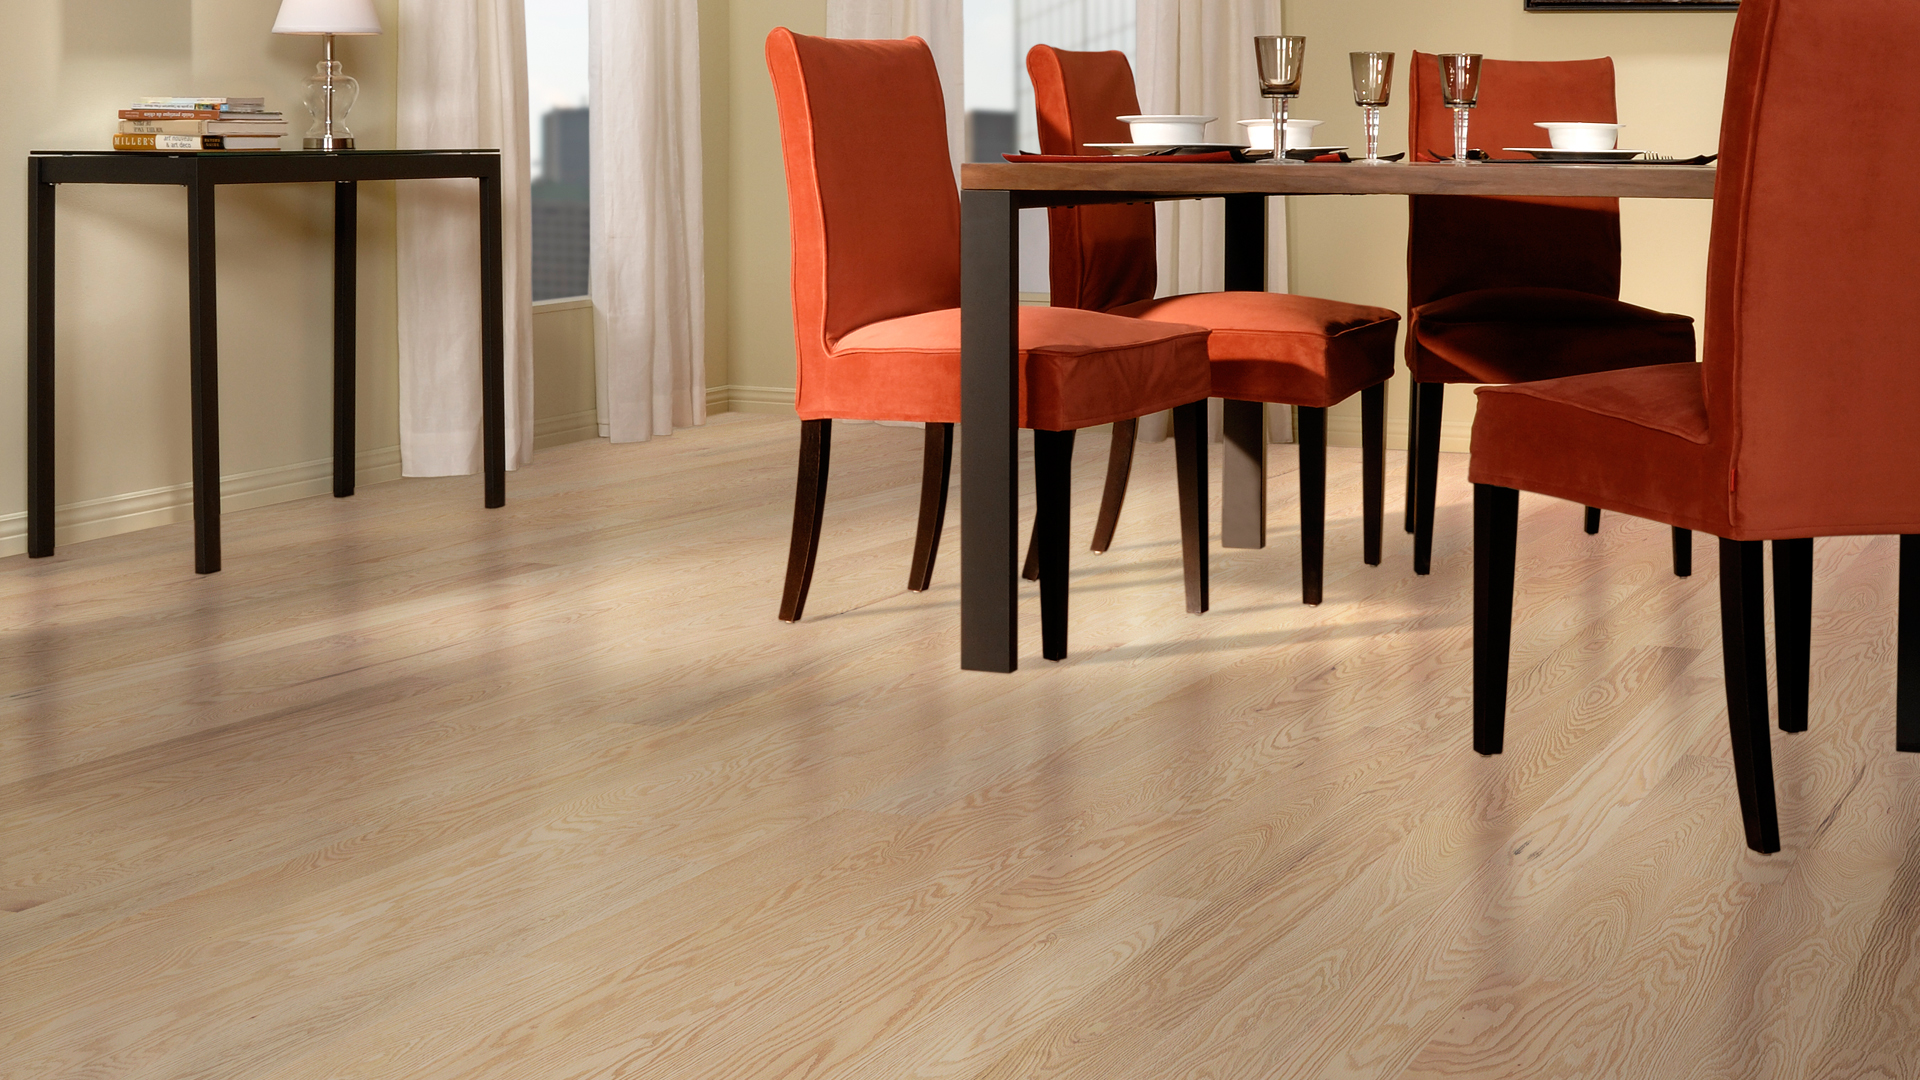 Red oak wire brushed cachemire | Dubeau hardwood floors | Dining room decor